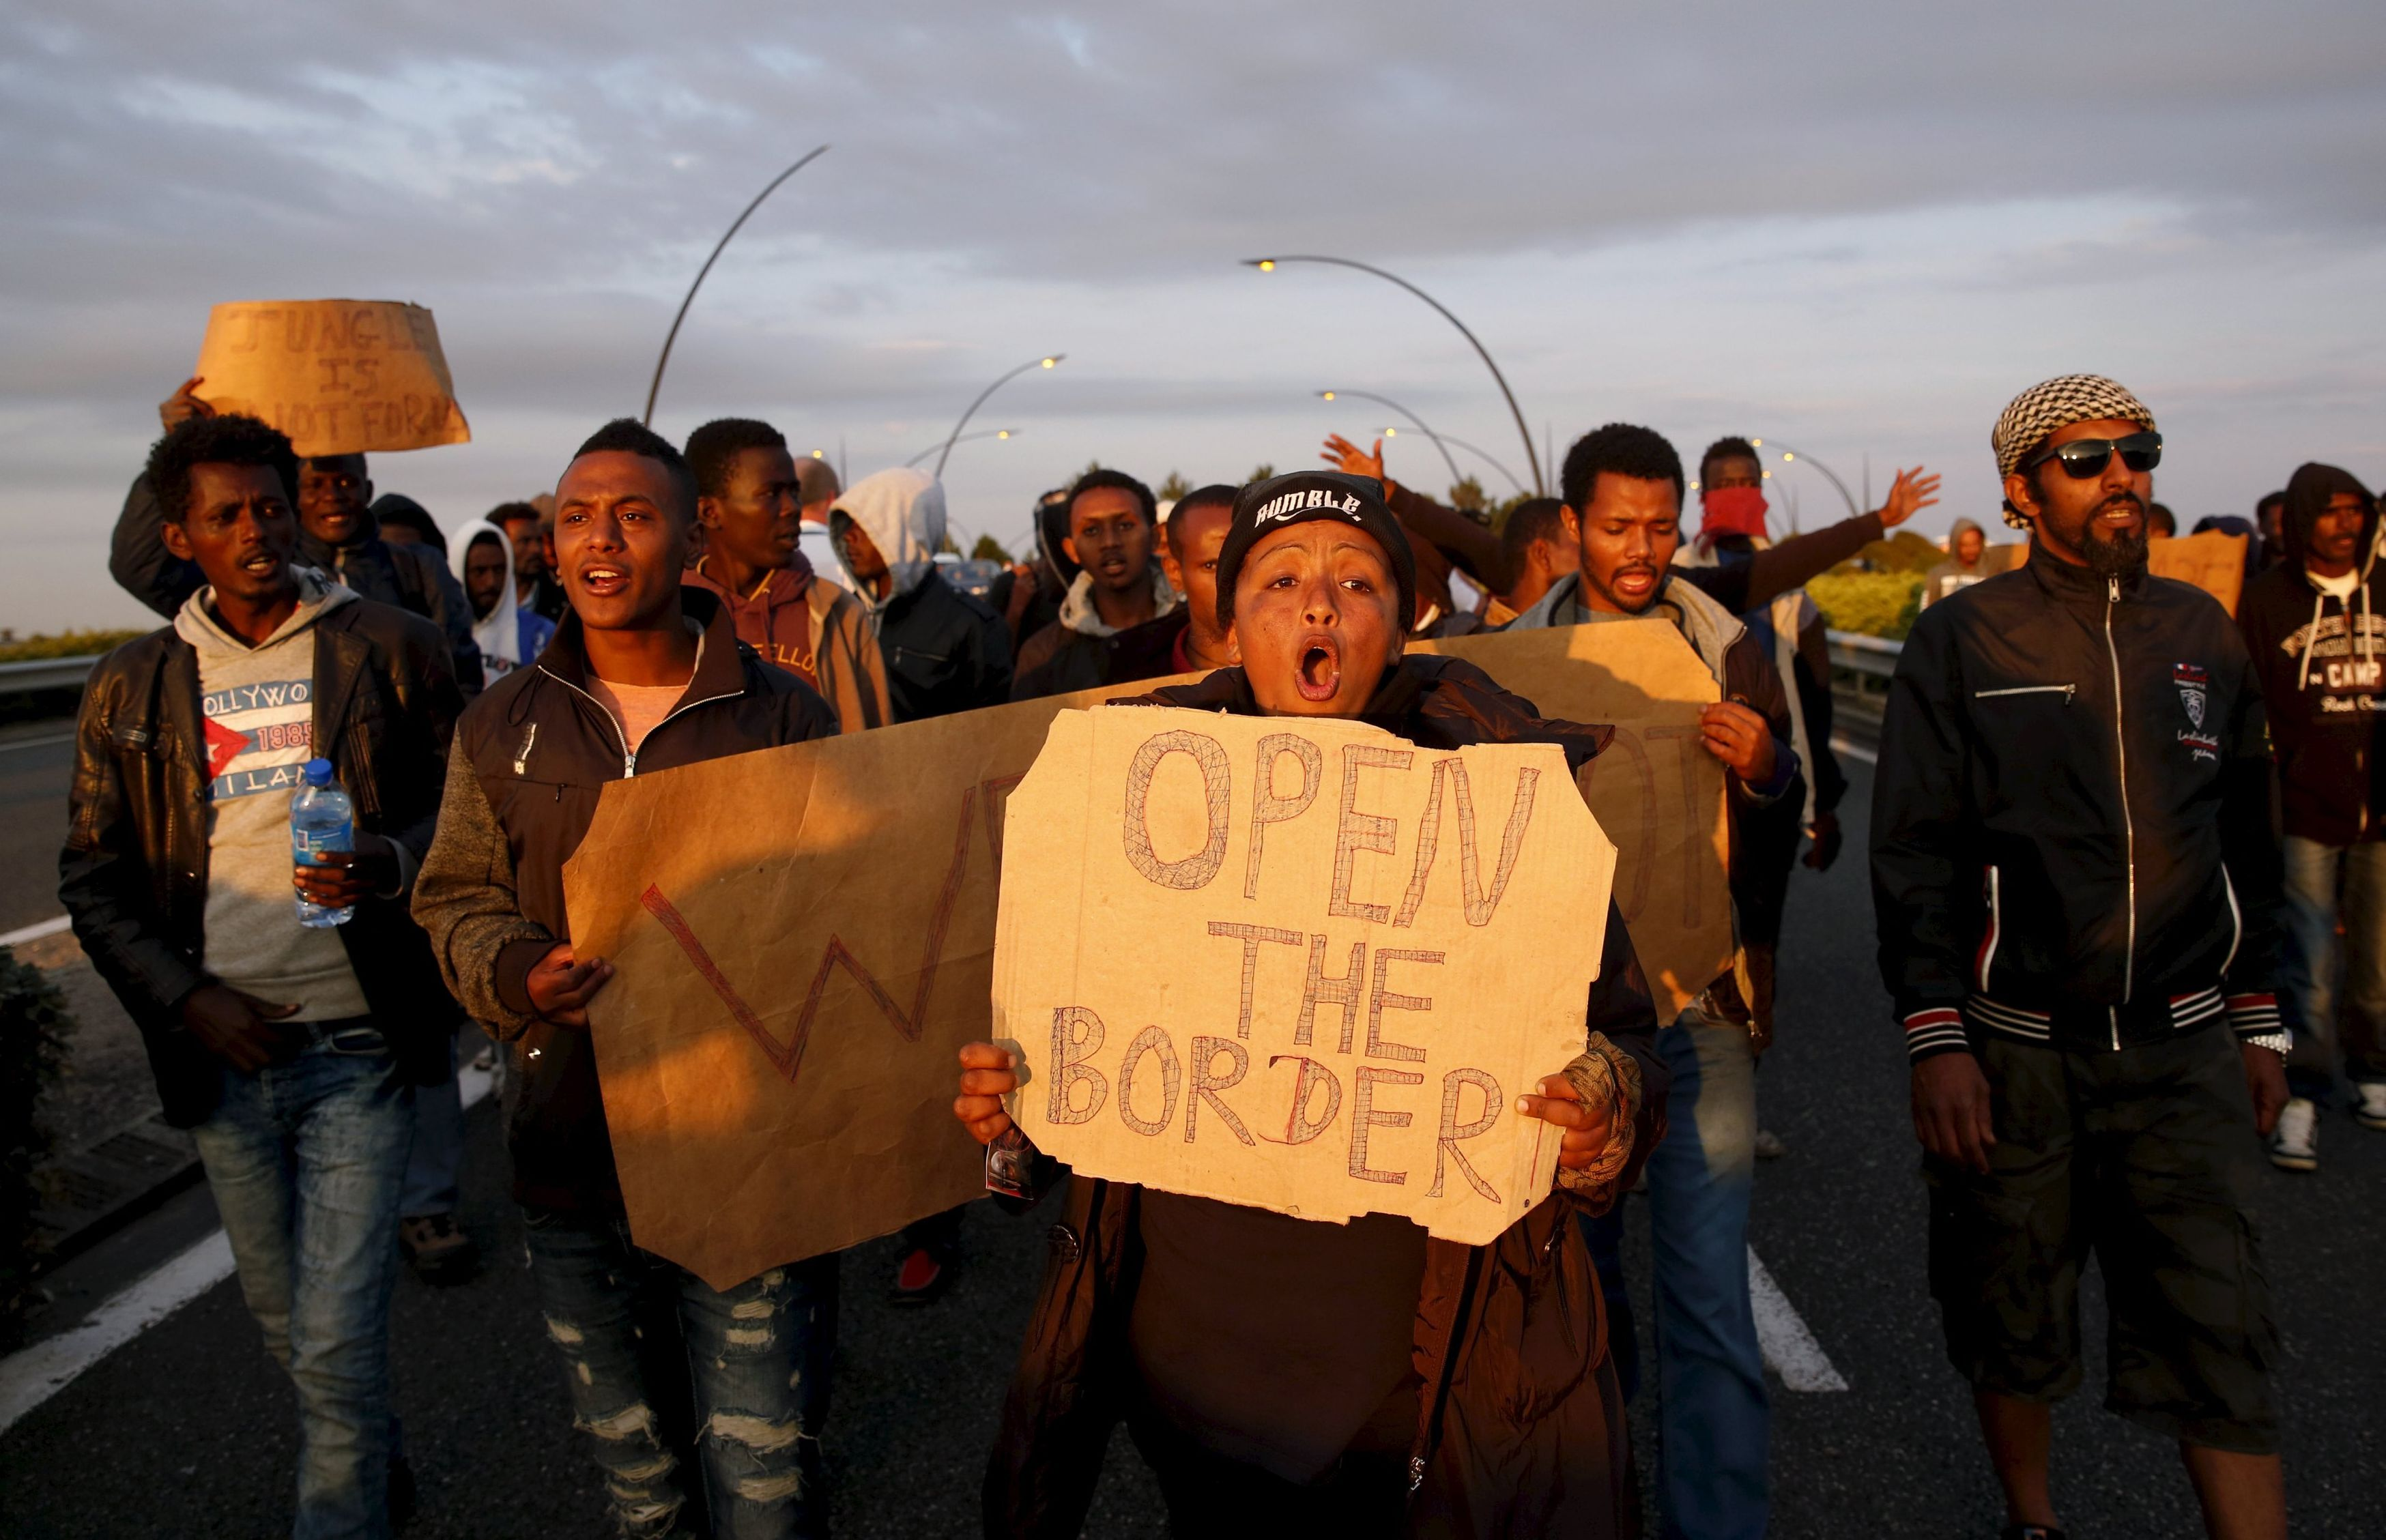 African migrants shout slogans during a protest on a motorway in Calais, France